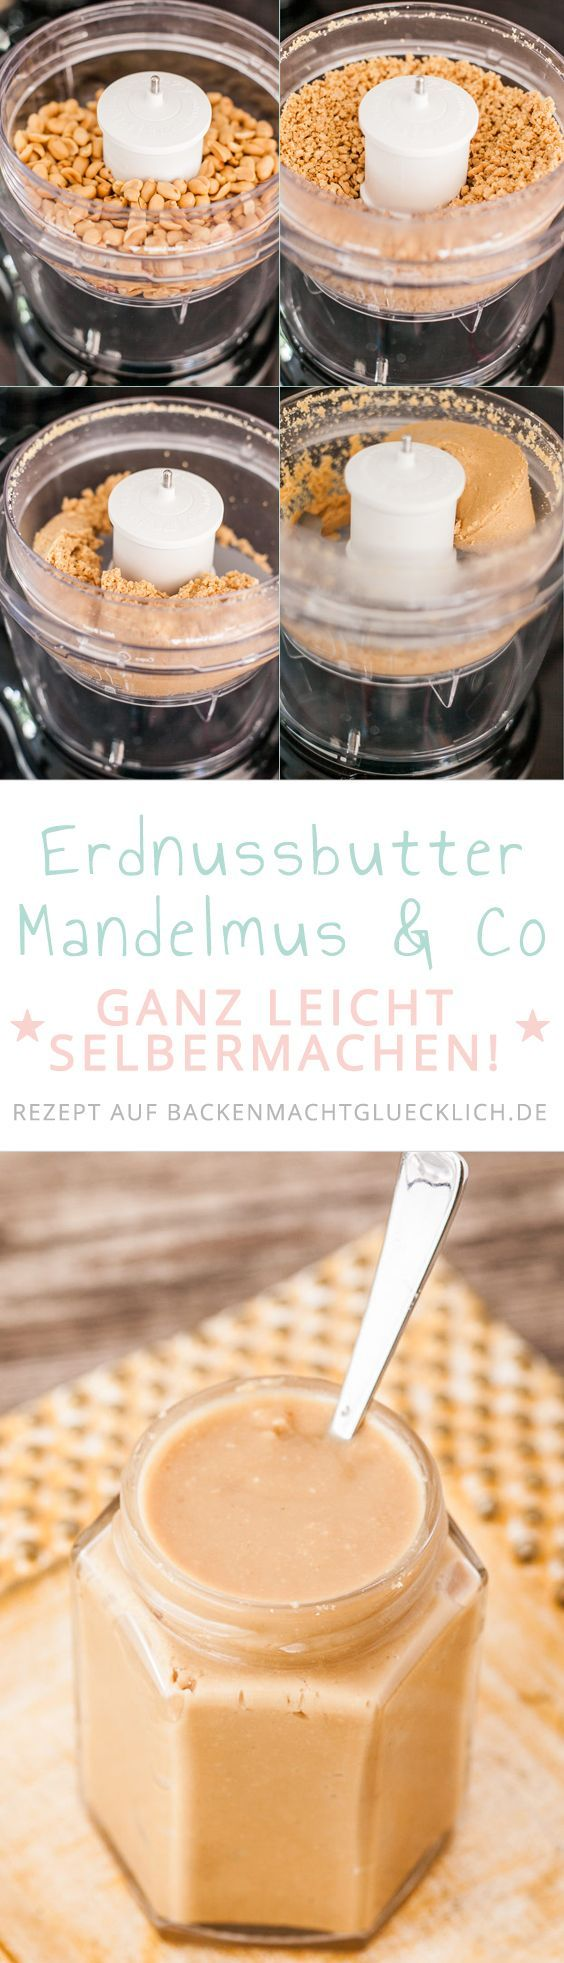 grundrezept f r erdnussbutter und mandelmus rezept essen pinterest erdnussbutter butter. Black Bedroom Furniture Sets. Home Design Ideas